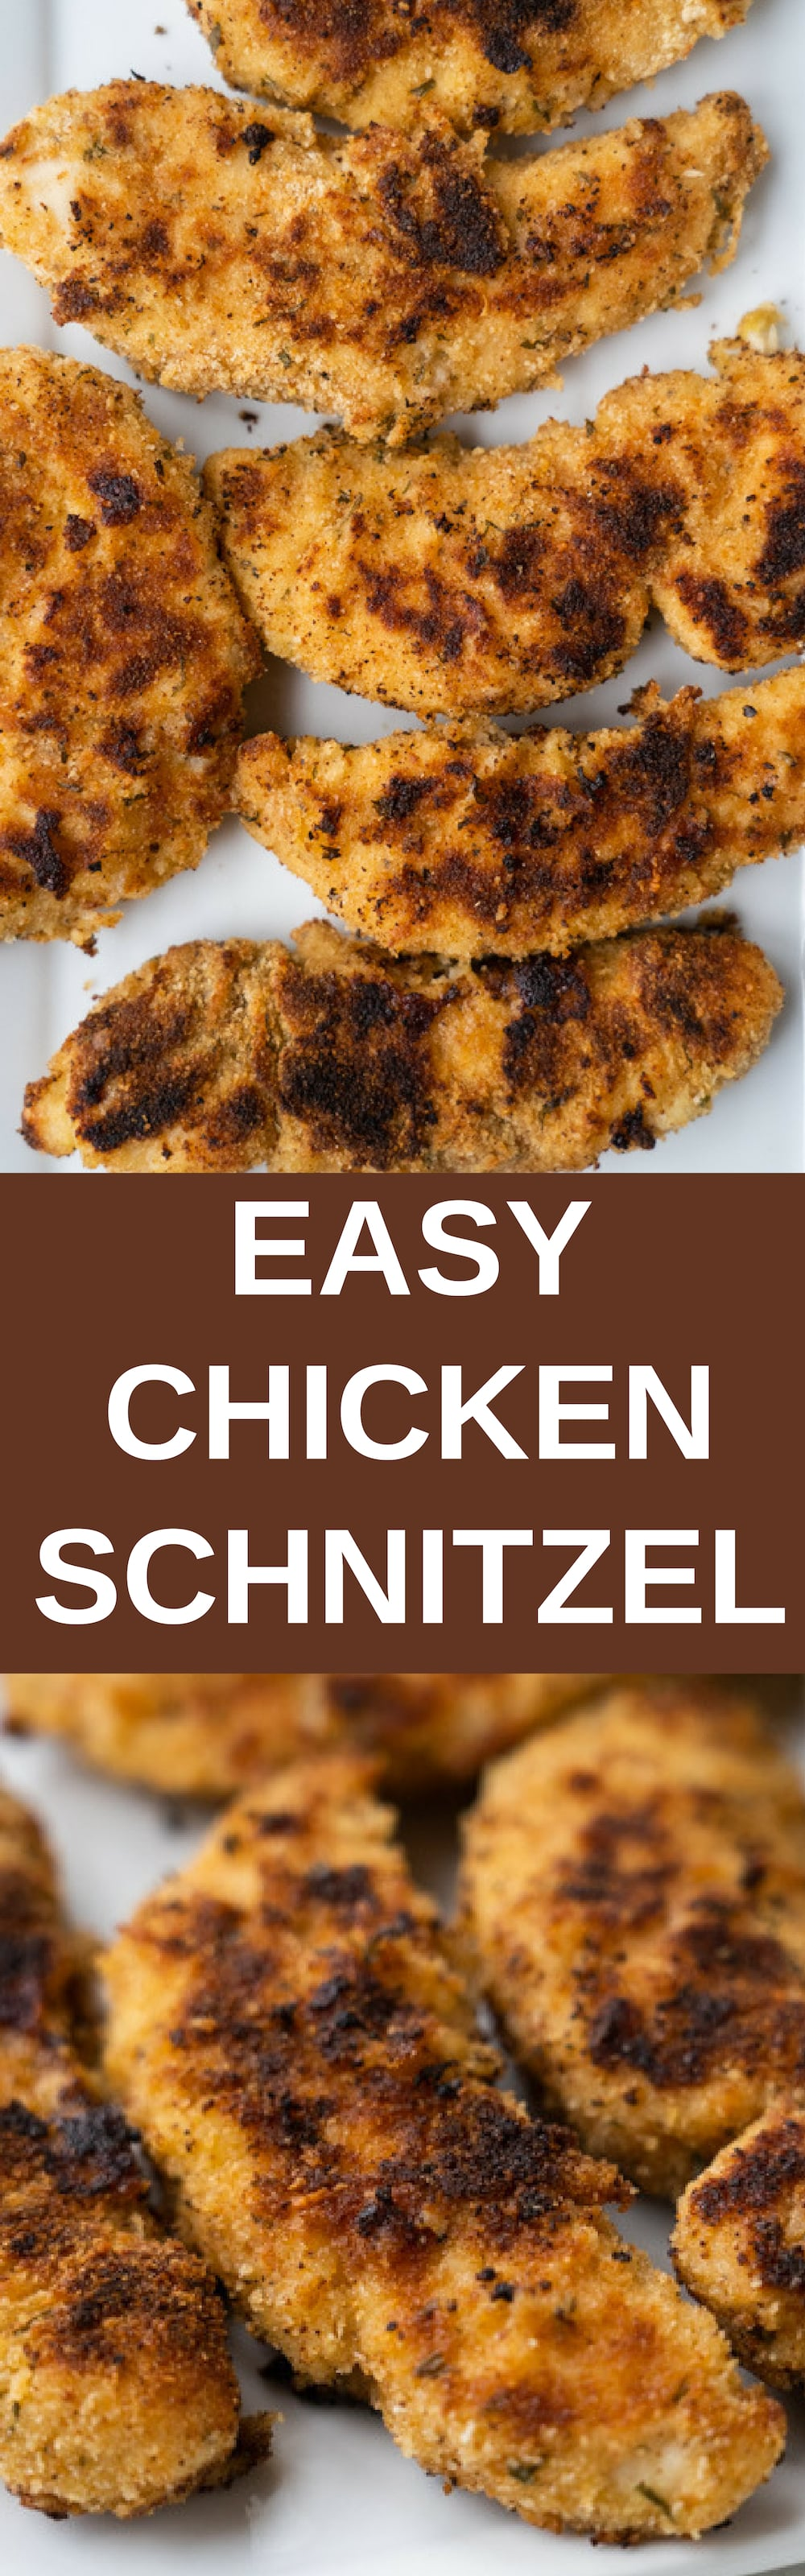 German Chicken Schnitzel recipe. This is a grandma recipe so you know it's going to be good.This easy meal only takes 15 minutes! Make sure to serve with classic German sides like potato salad, sauerkraut and spaetzle.